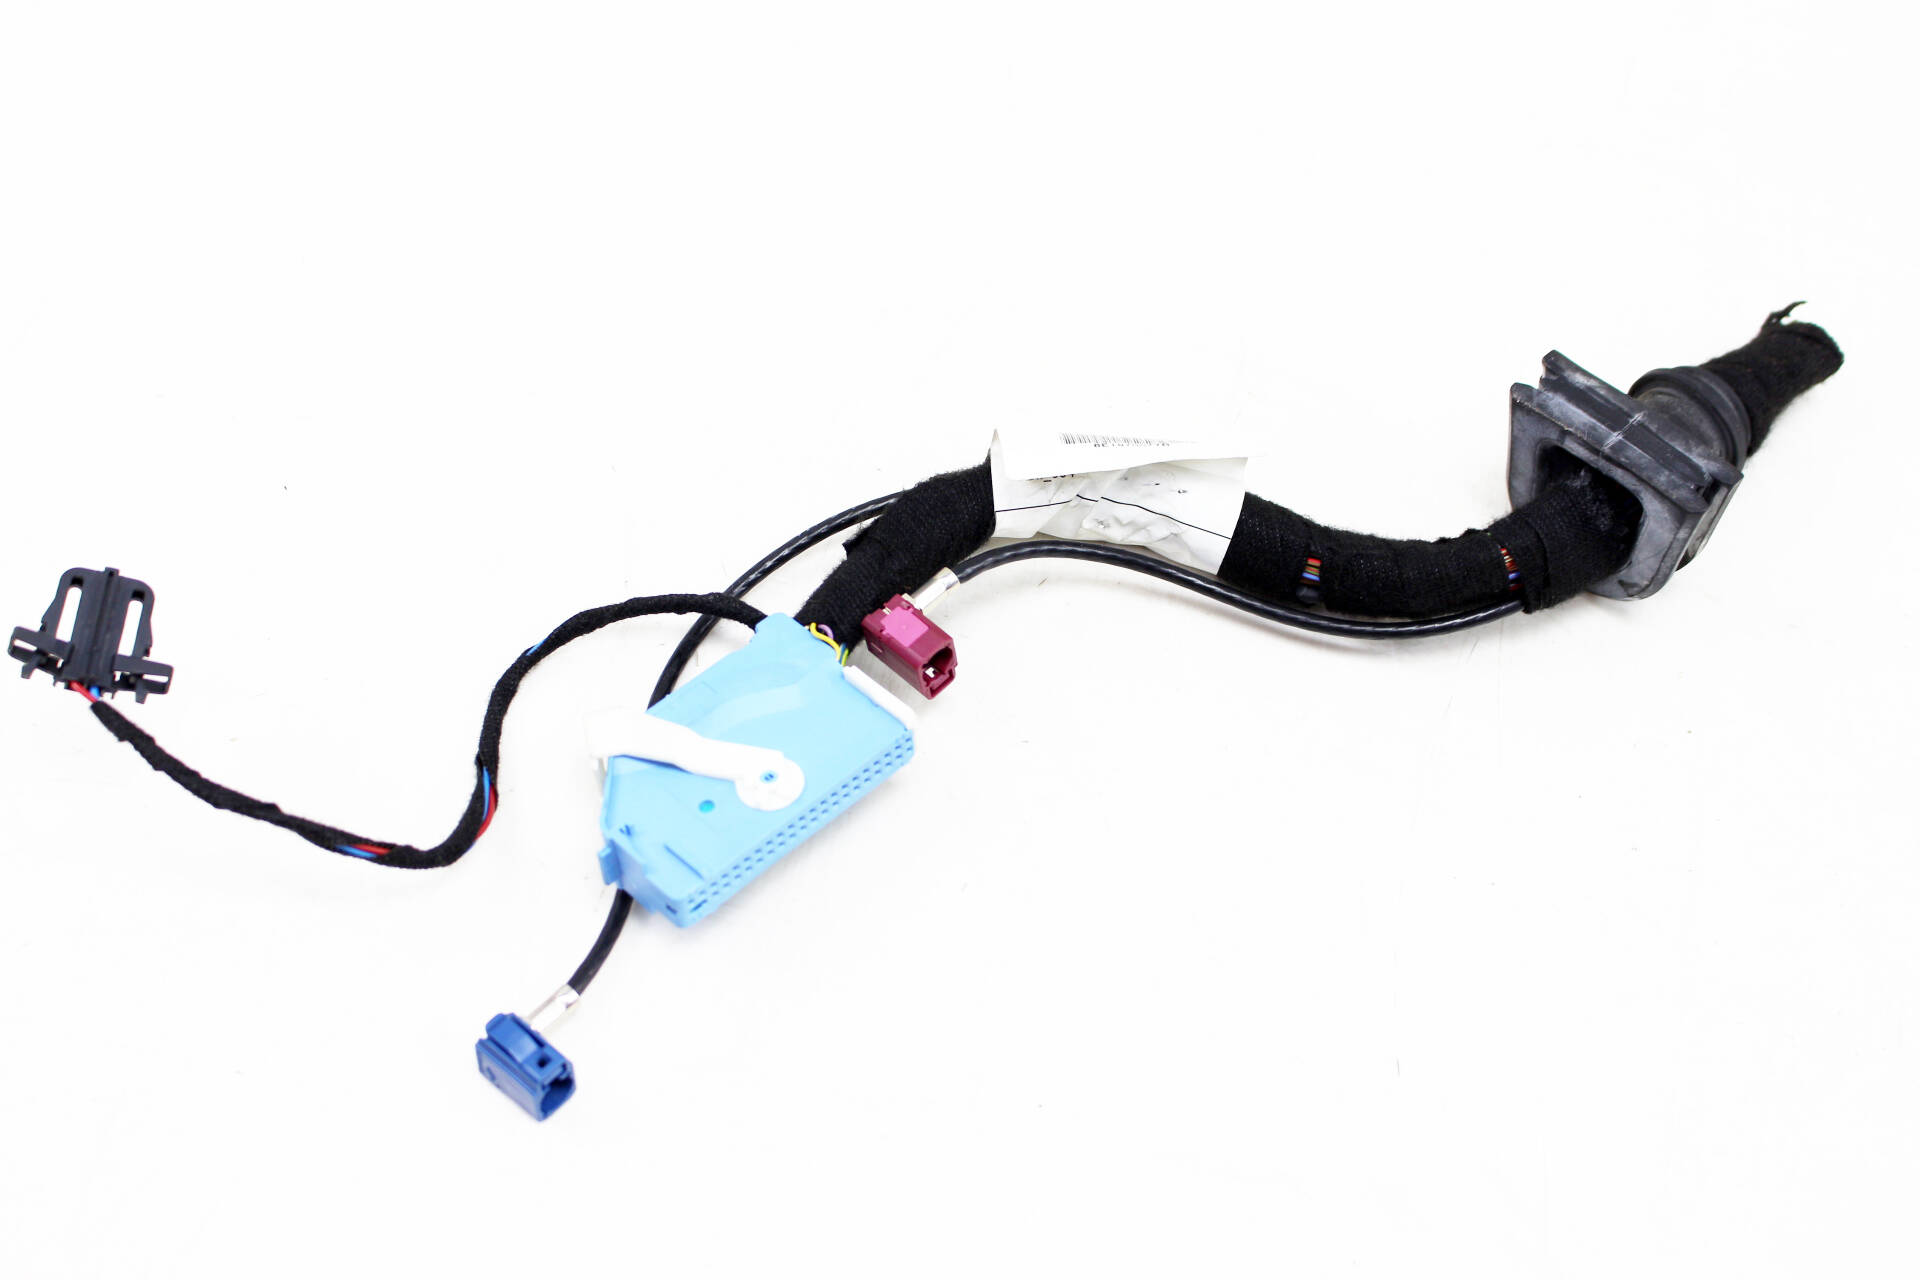 hight resolution of 2004 2005 audi s4 b6 telematics module wiring harness connector